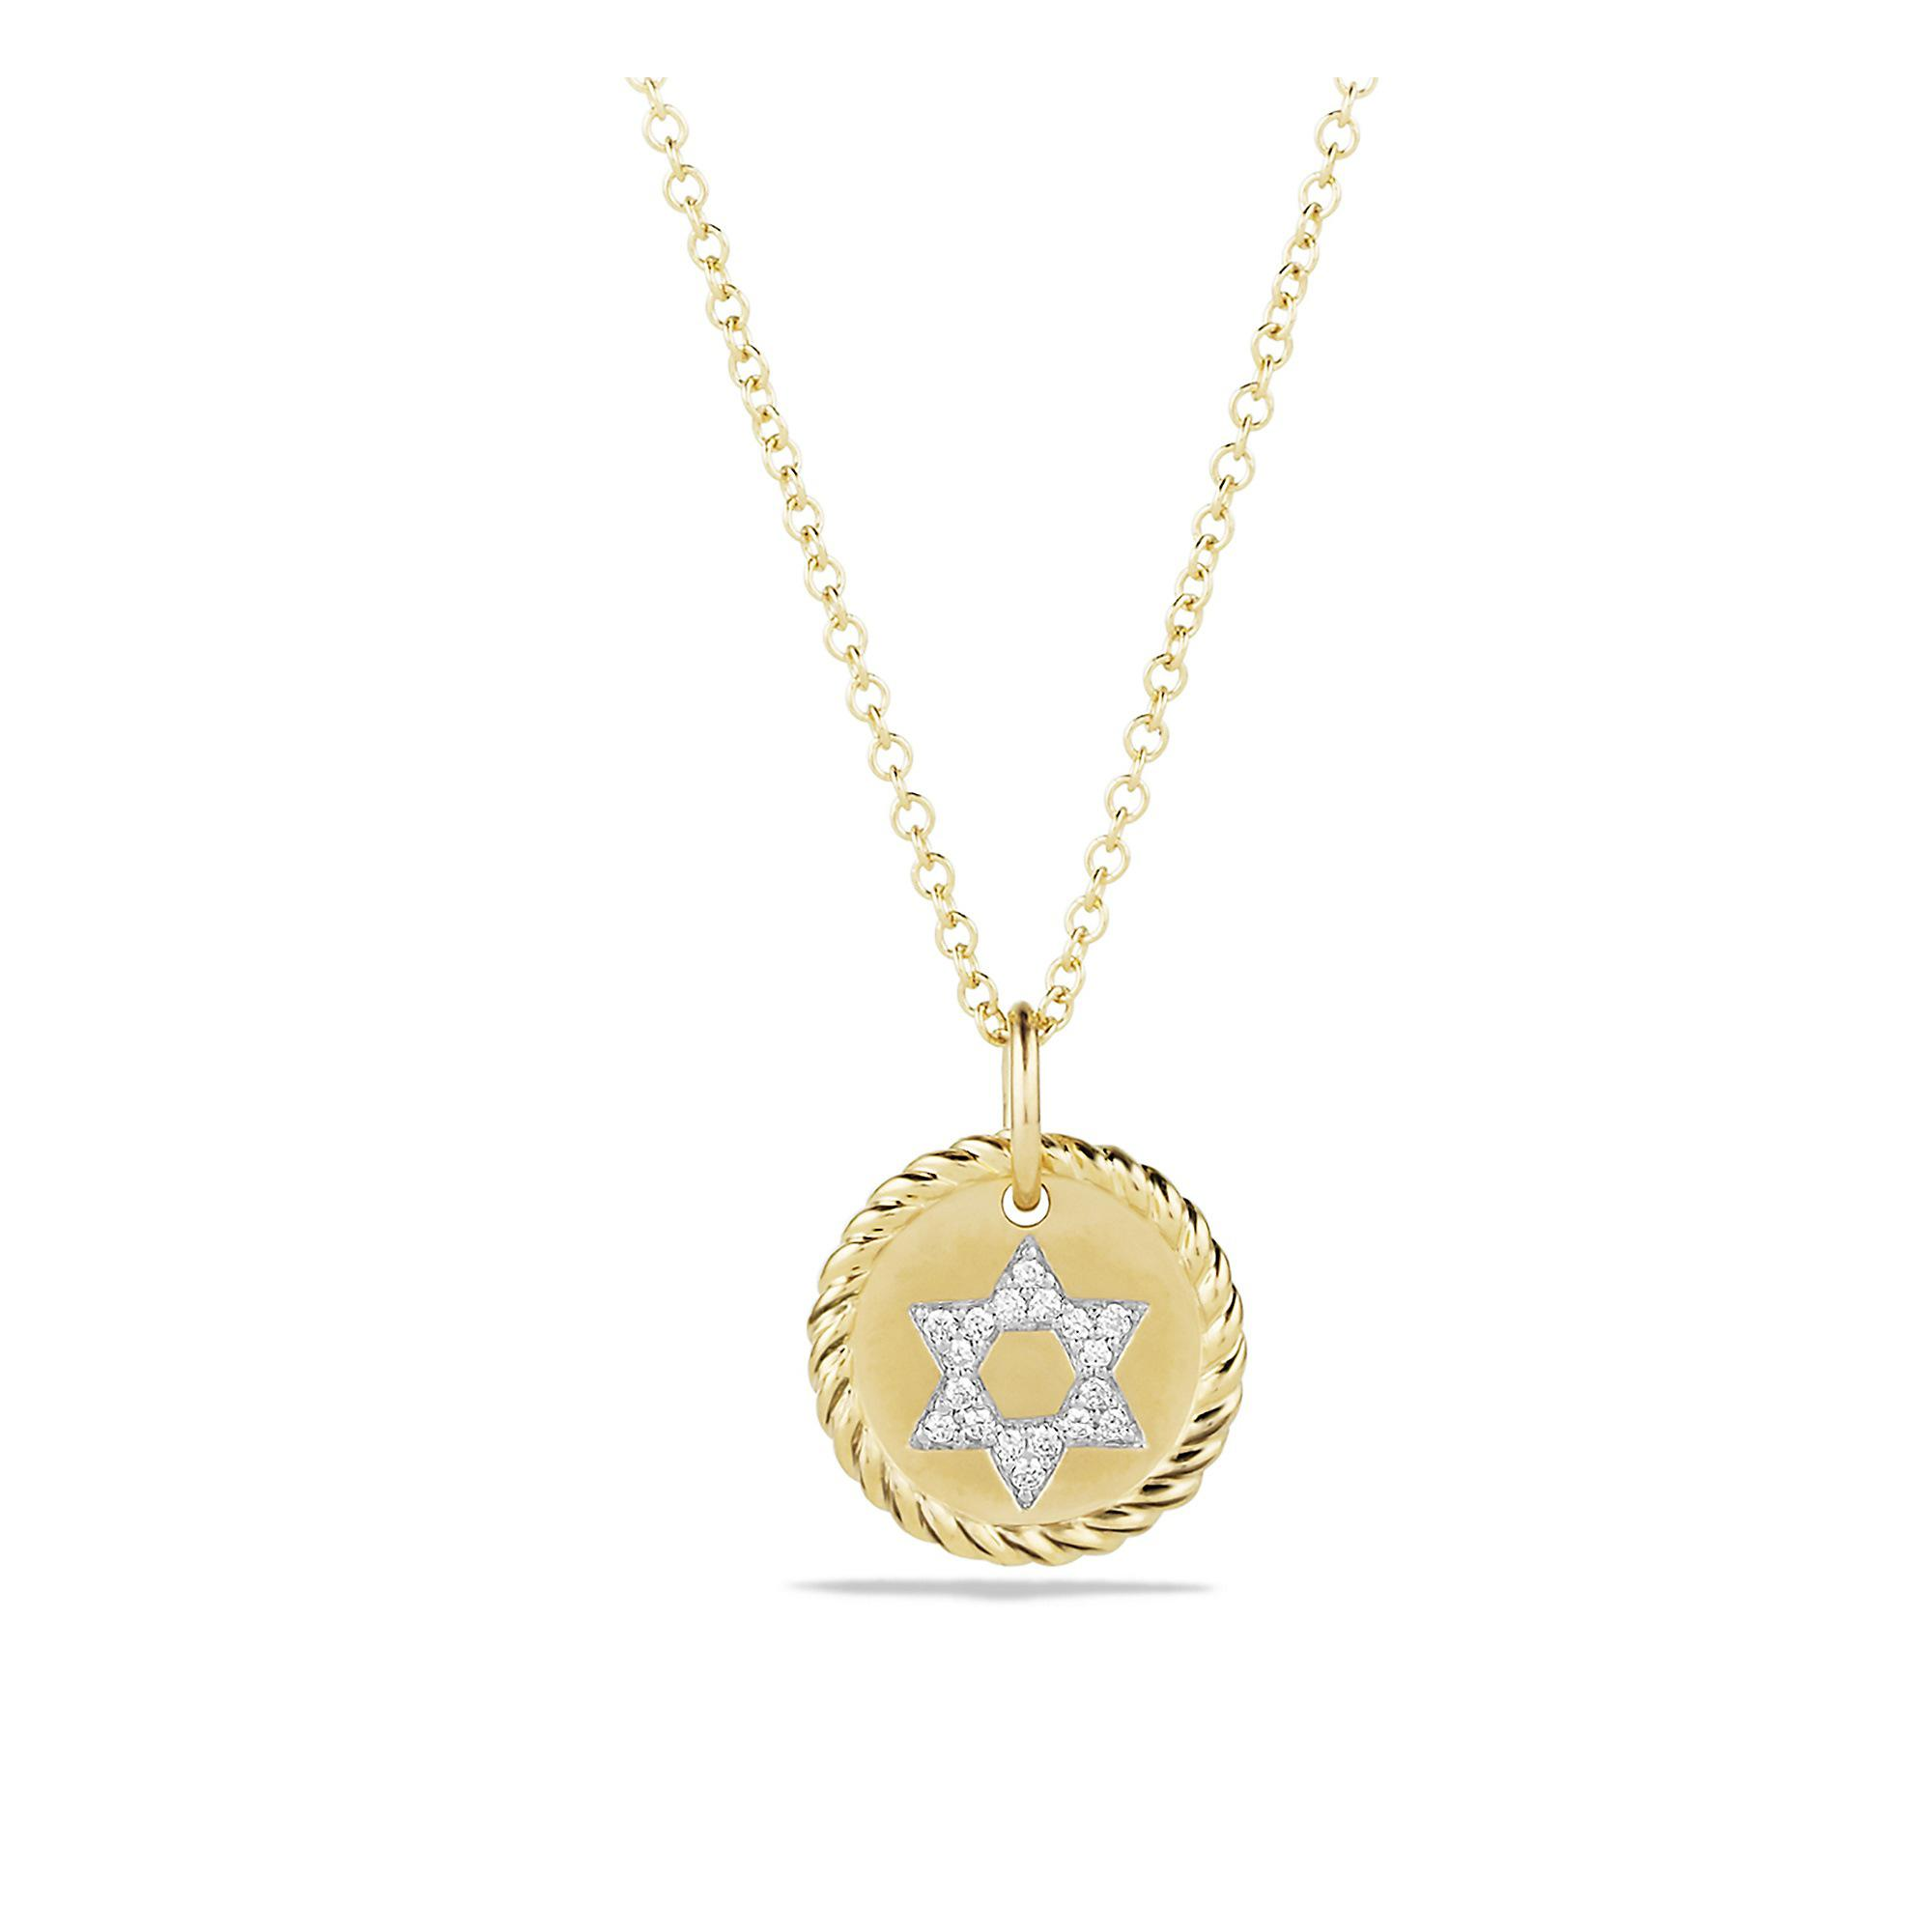 9b5d6cdf161a David Yurman. Women's Metallic Cable Collectibles Star Of David Necklace  With Diamonds In 18k Gold